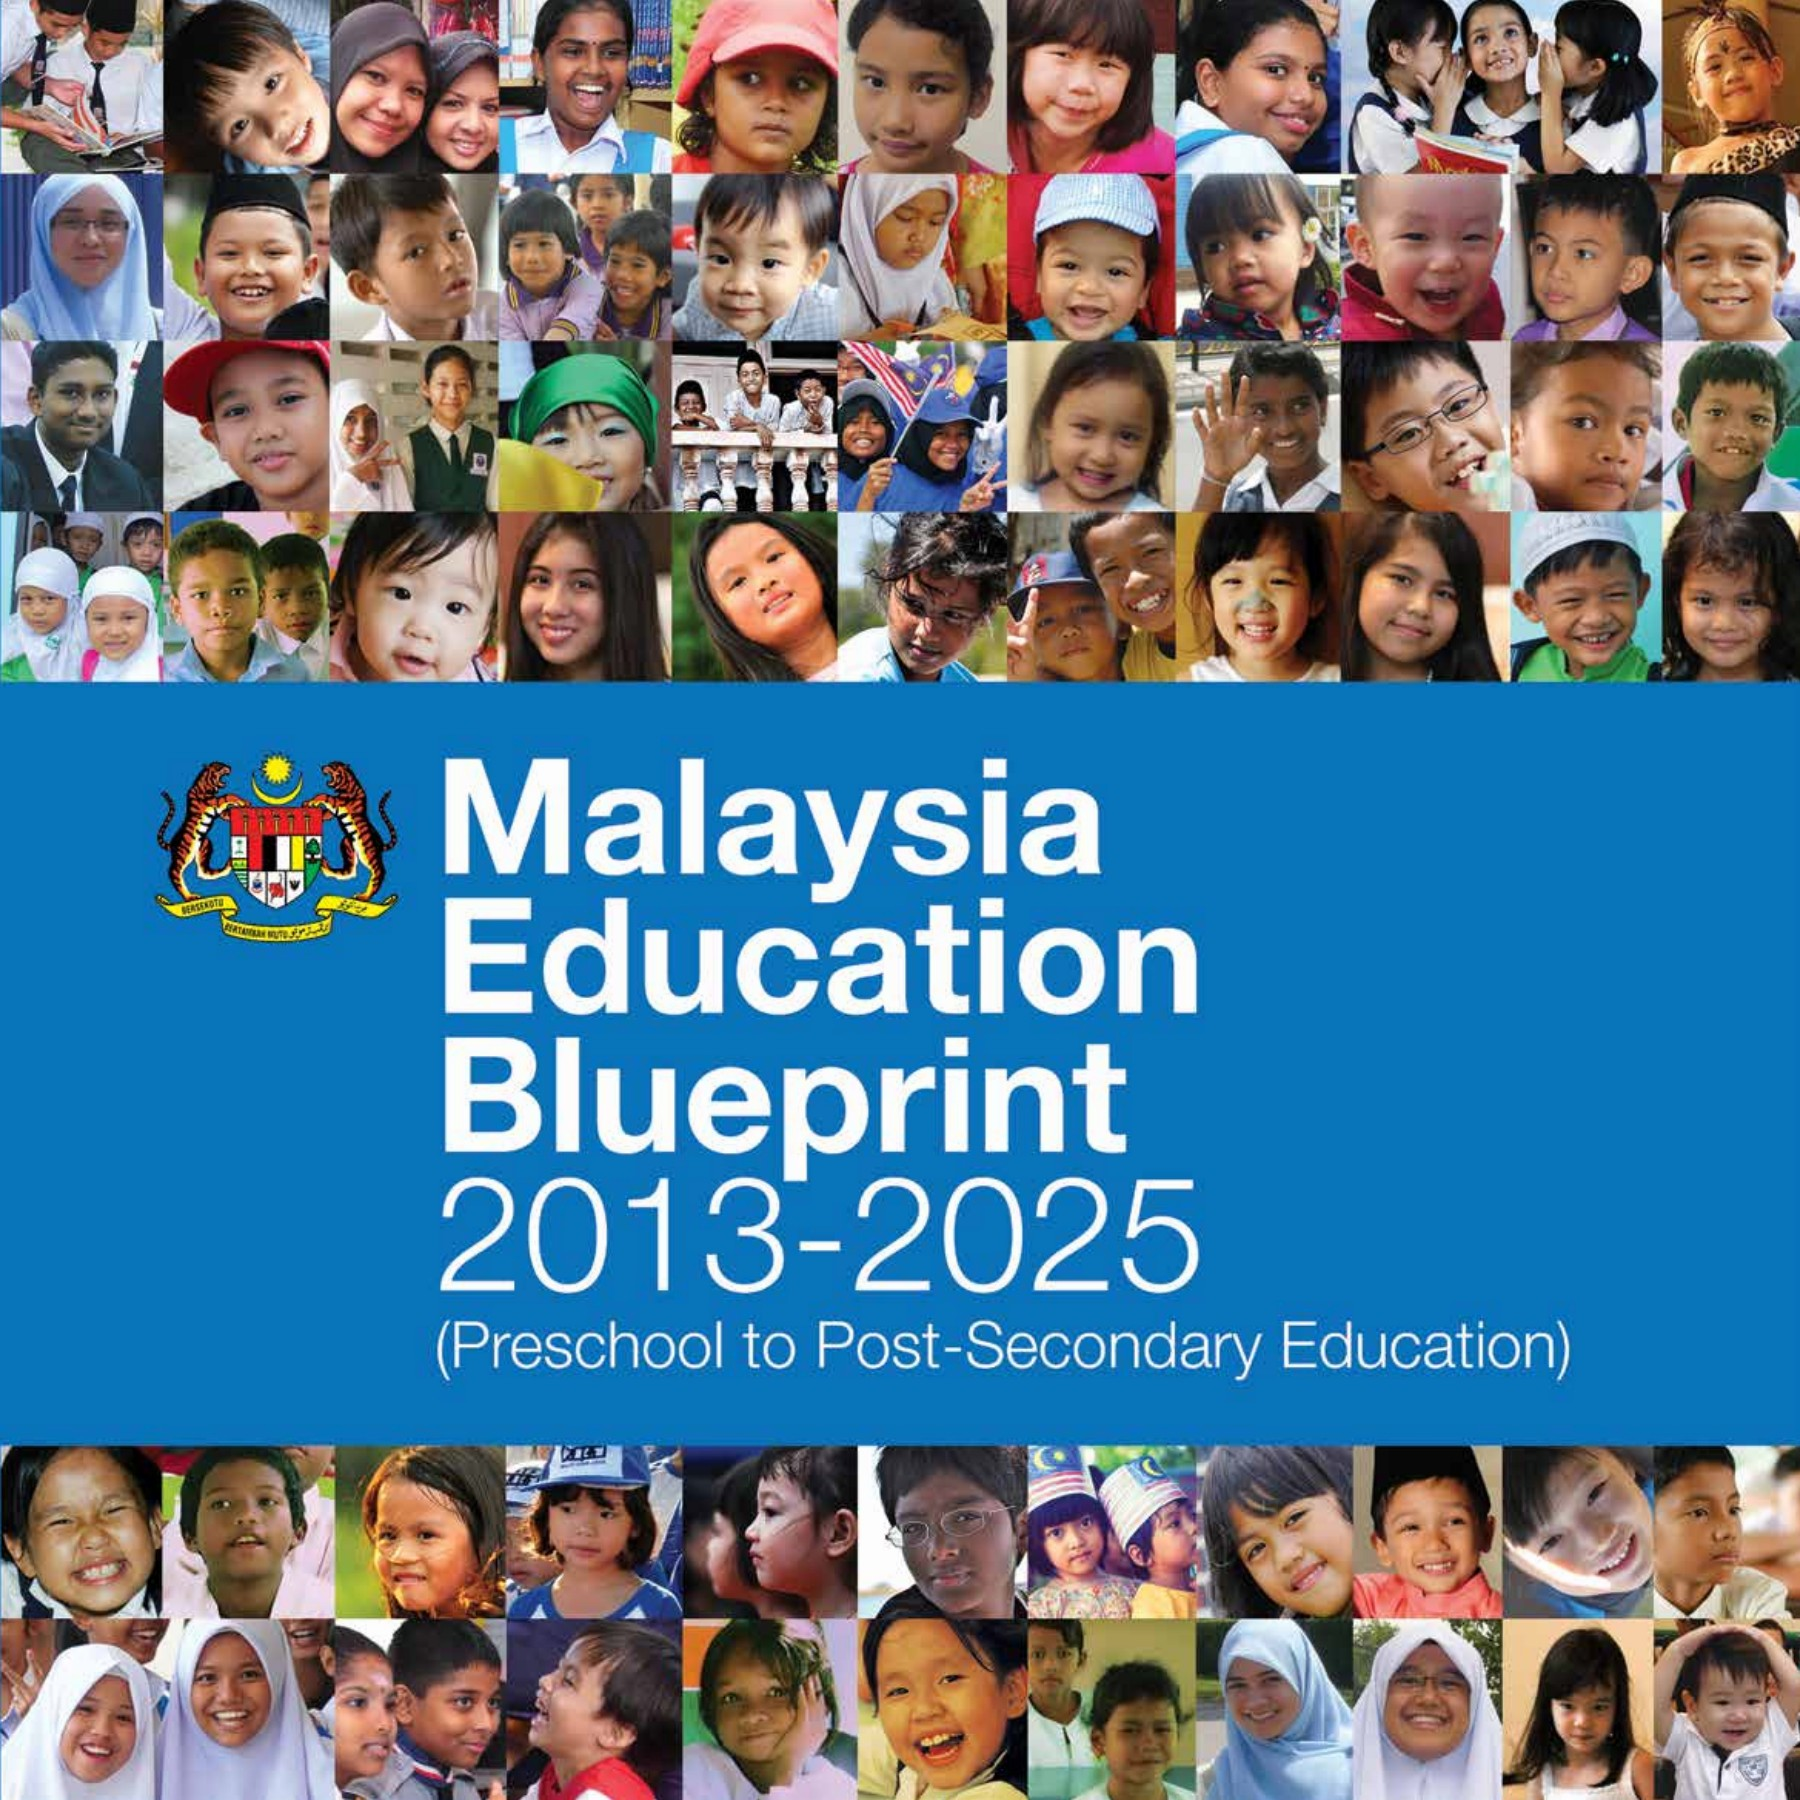 Malaysia education blueprint 2013 2025 pages 1 50 text version malaysia education blueprint 2013 2025 malvernweather Image collections